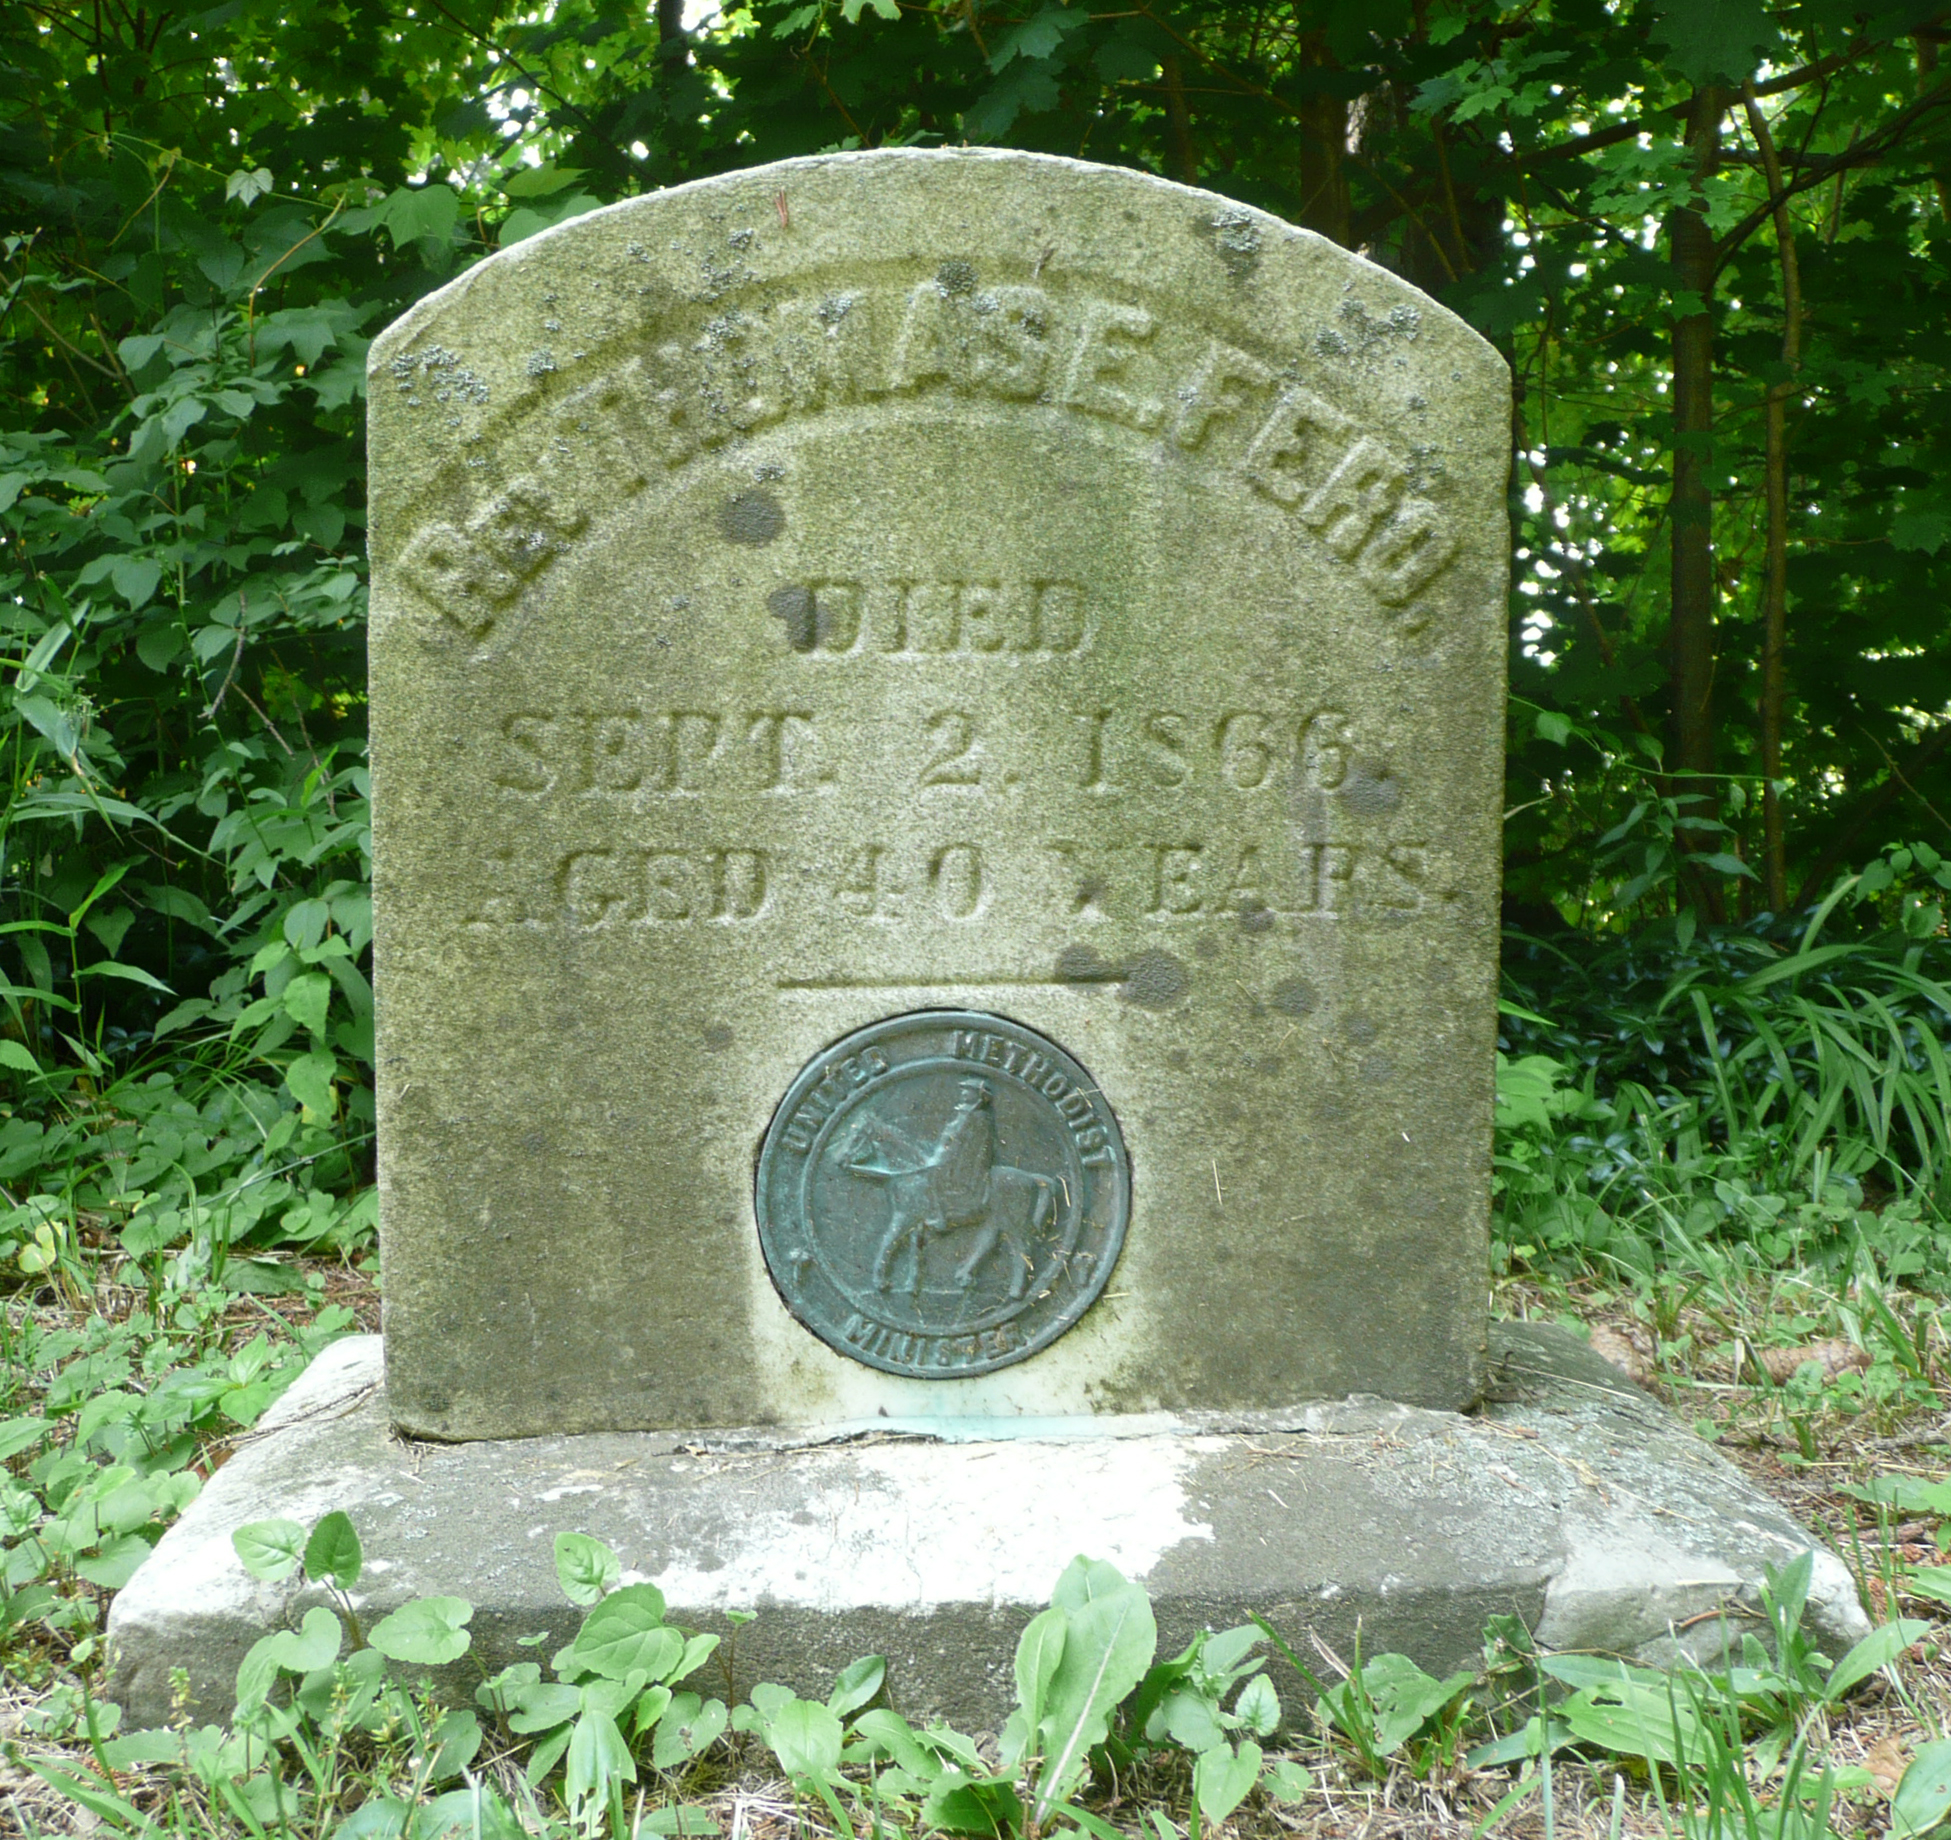 The tombstone of the Reverend Thomas E. Fero contains a medallion indicating that he was a Methodist minister.